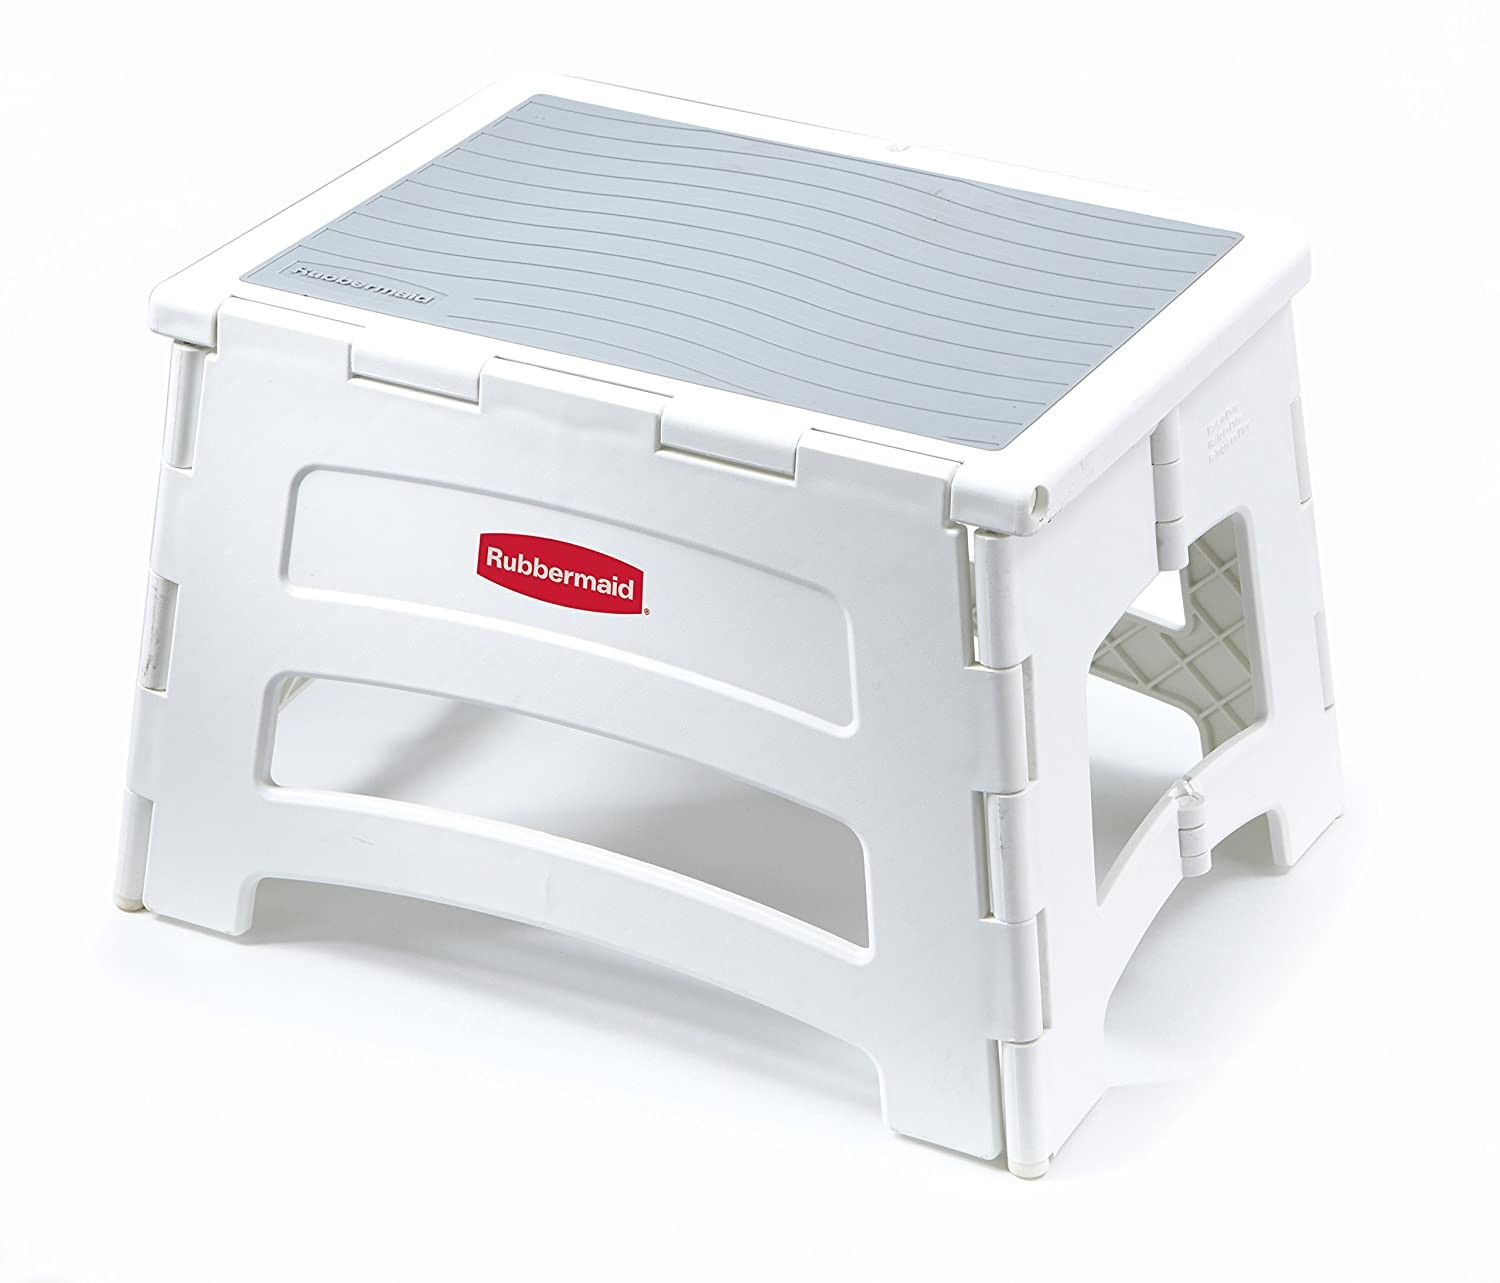 Rubbermaid RM-PL1W Folding 1-Step Plastic Stool Tricam Industries